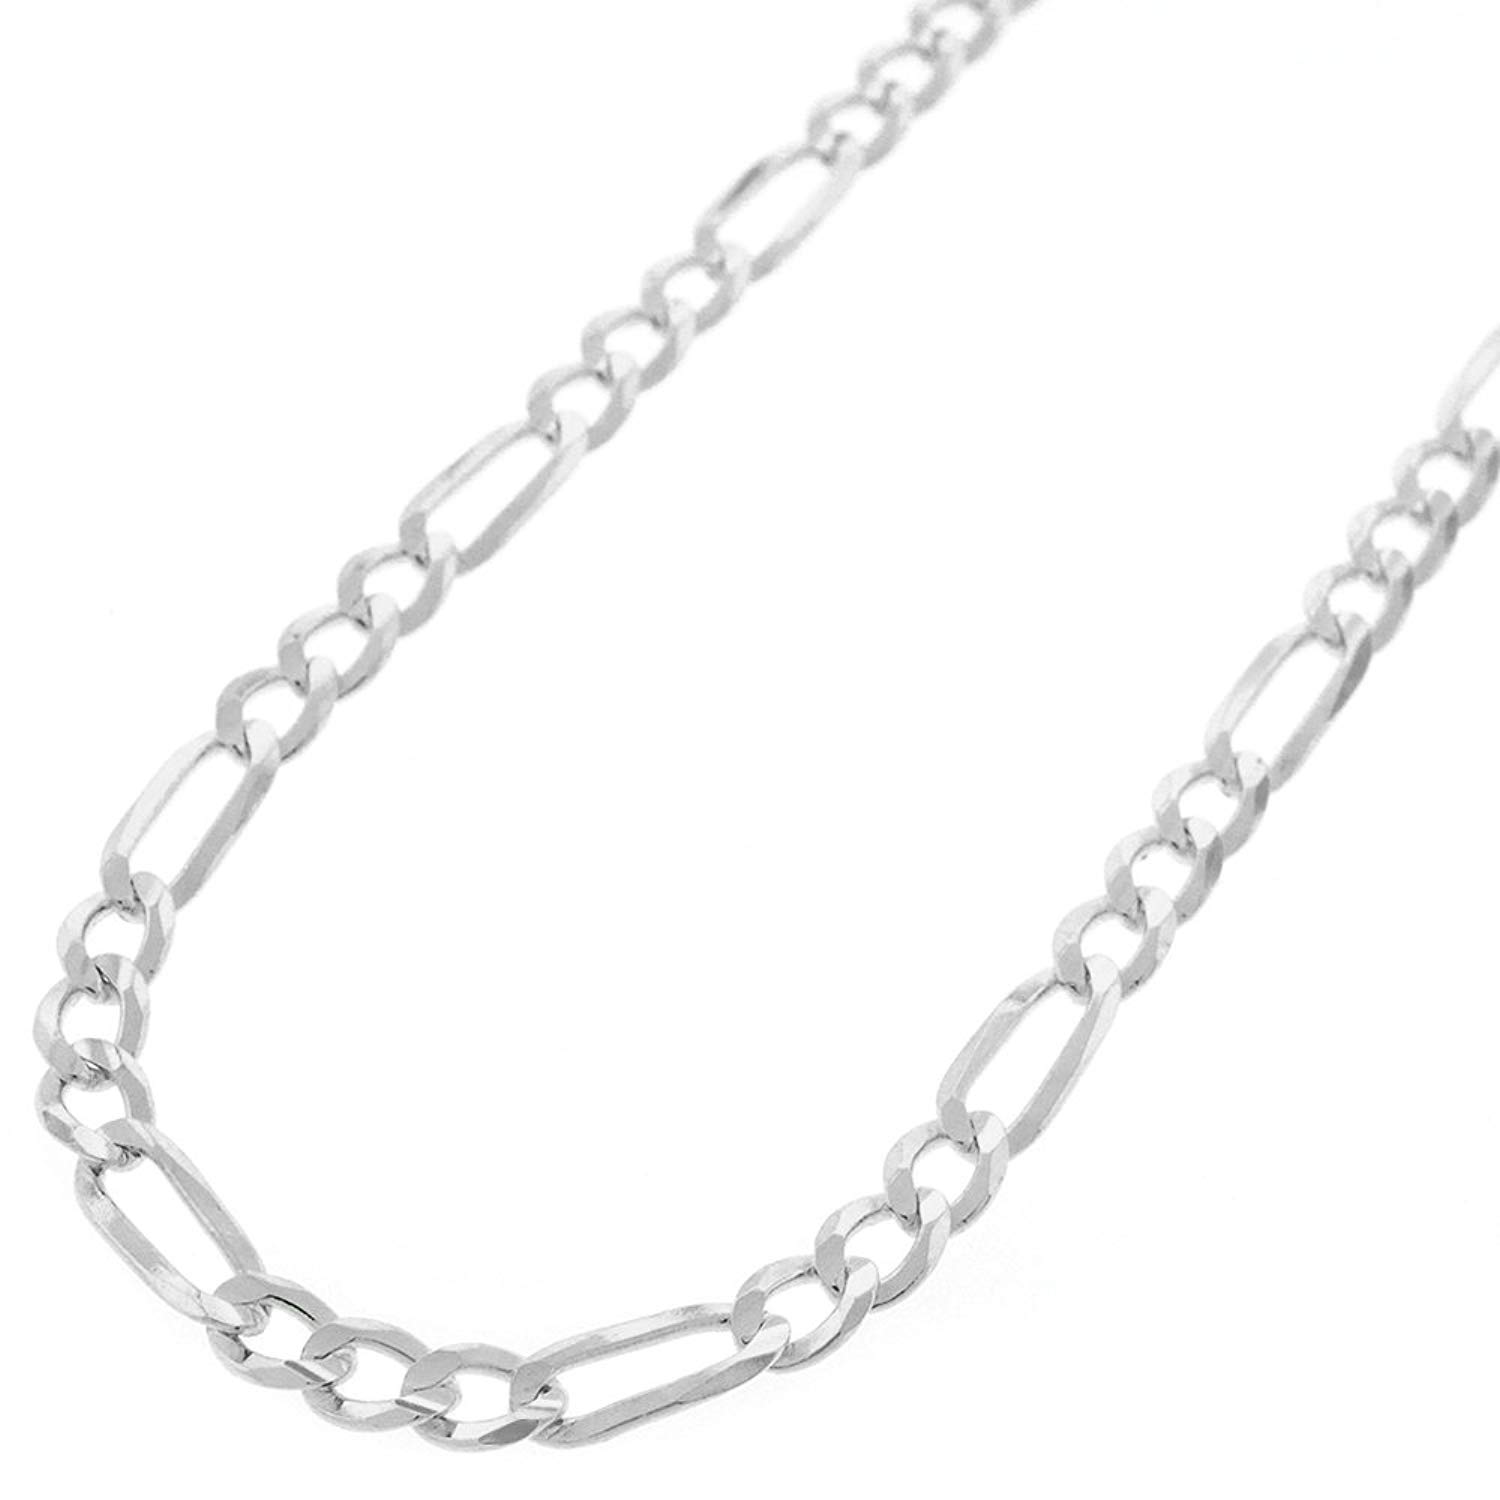 Sterling Silver Italian 4mm Figaro Link ITProLux Solid 925 Necklace Chain 16'' - 30'' (22)